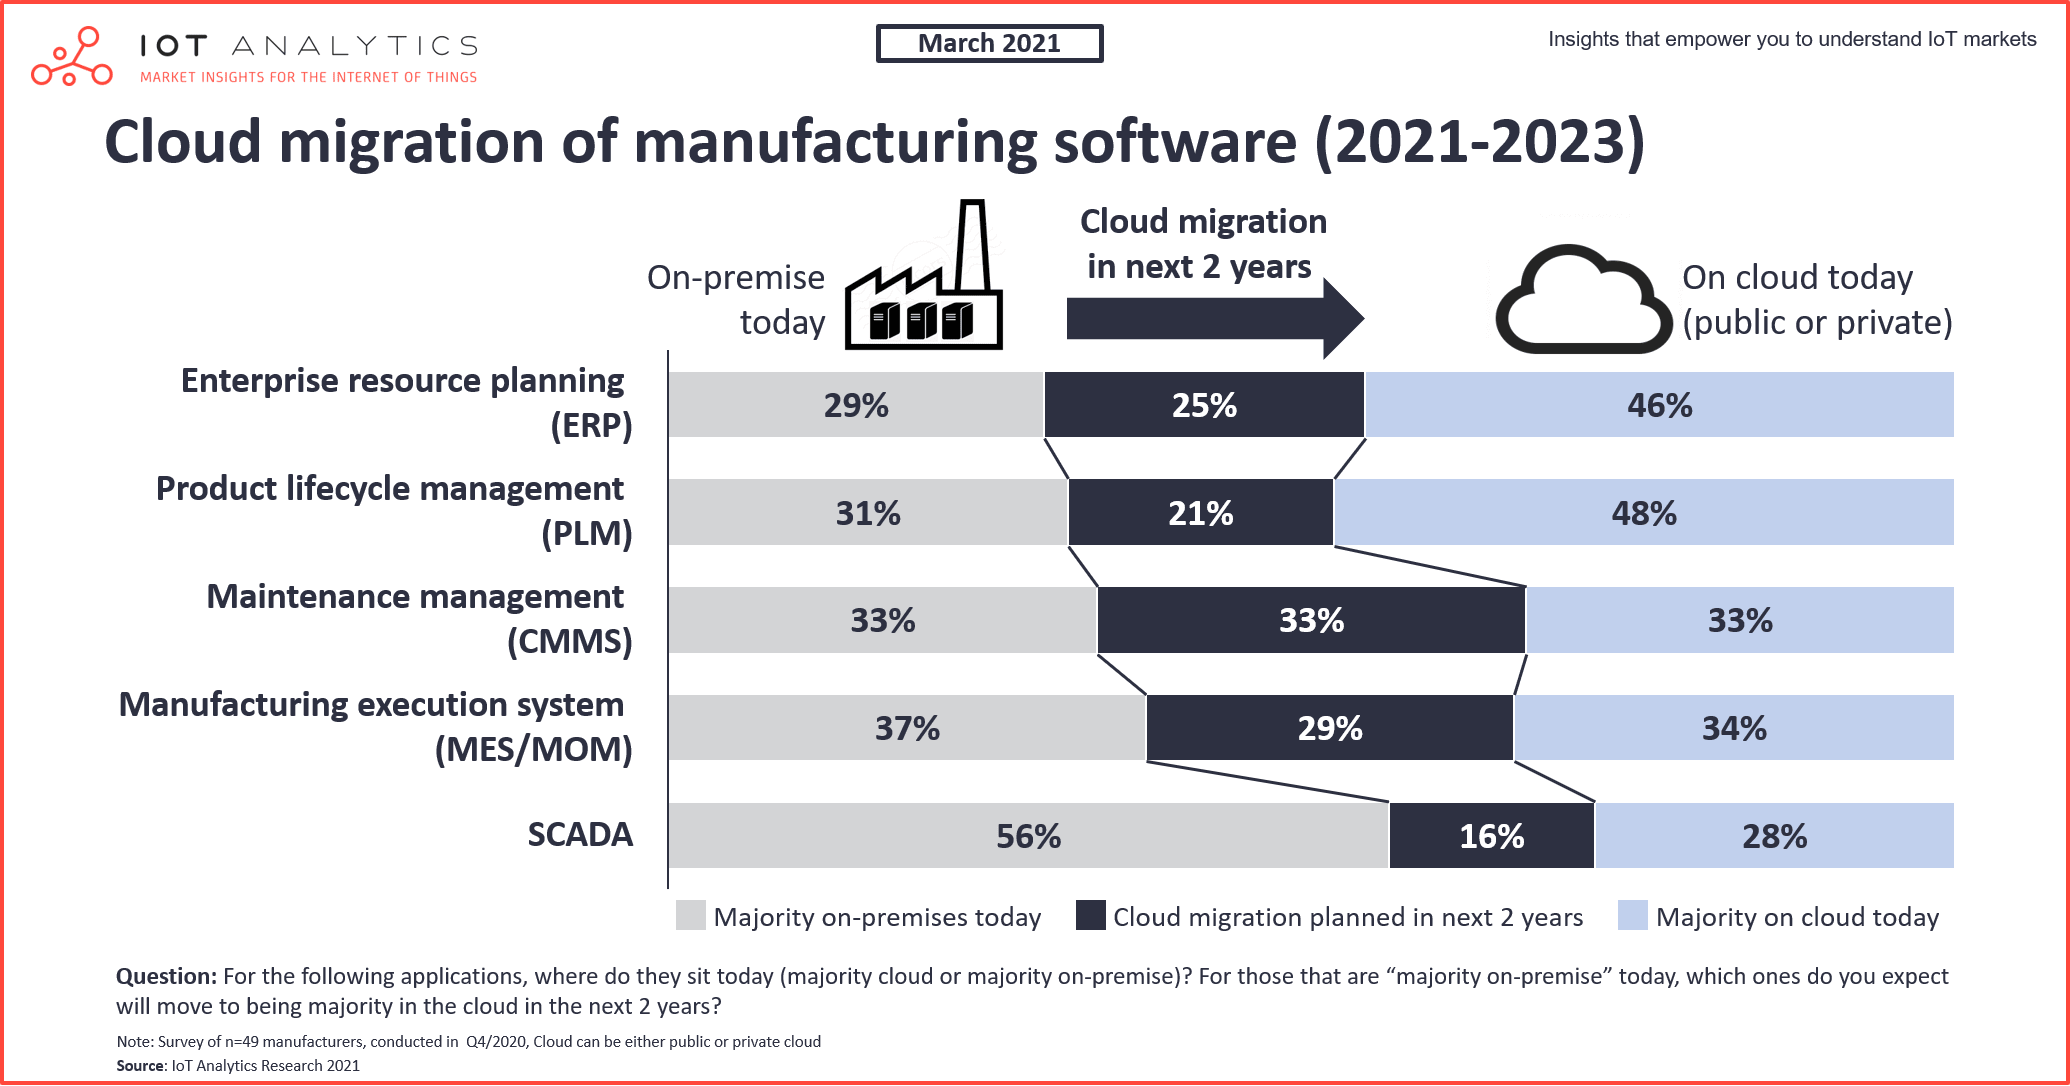 Cloud MES - Cloud migration of manufacturing software 2021-2023